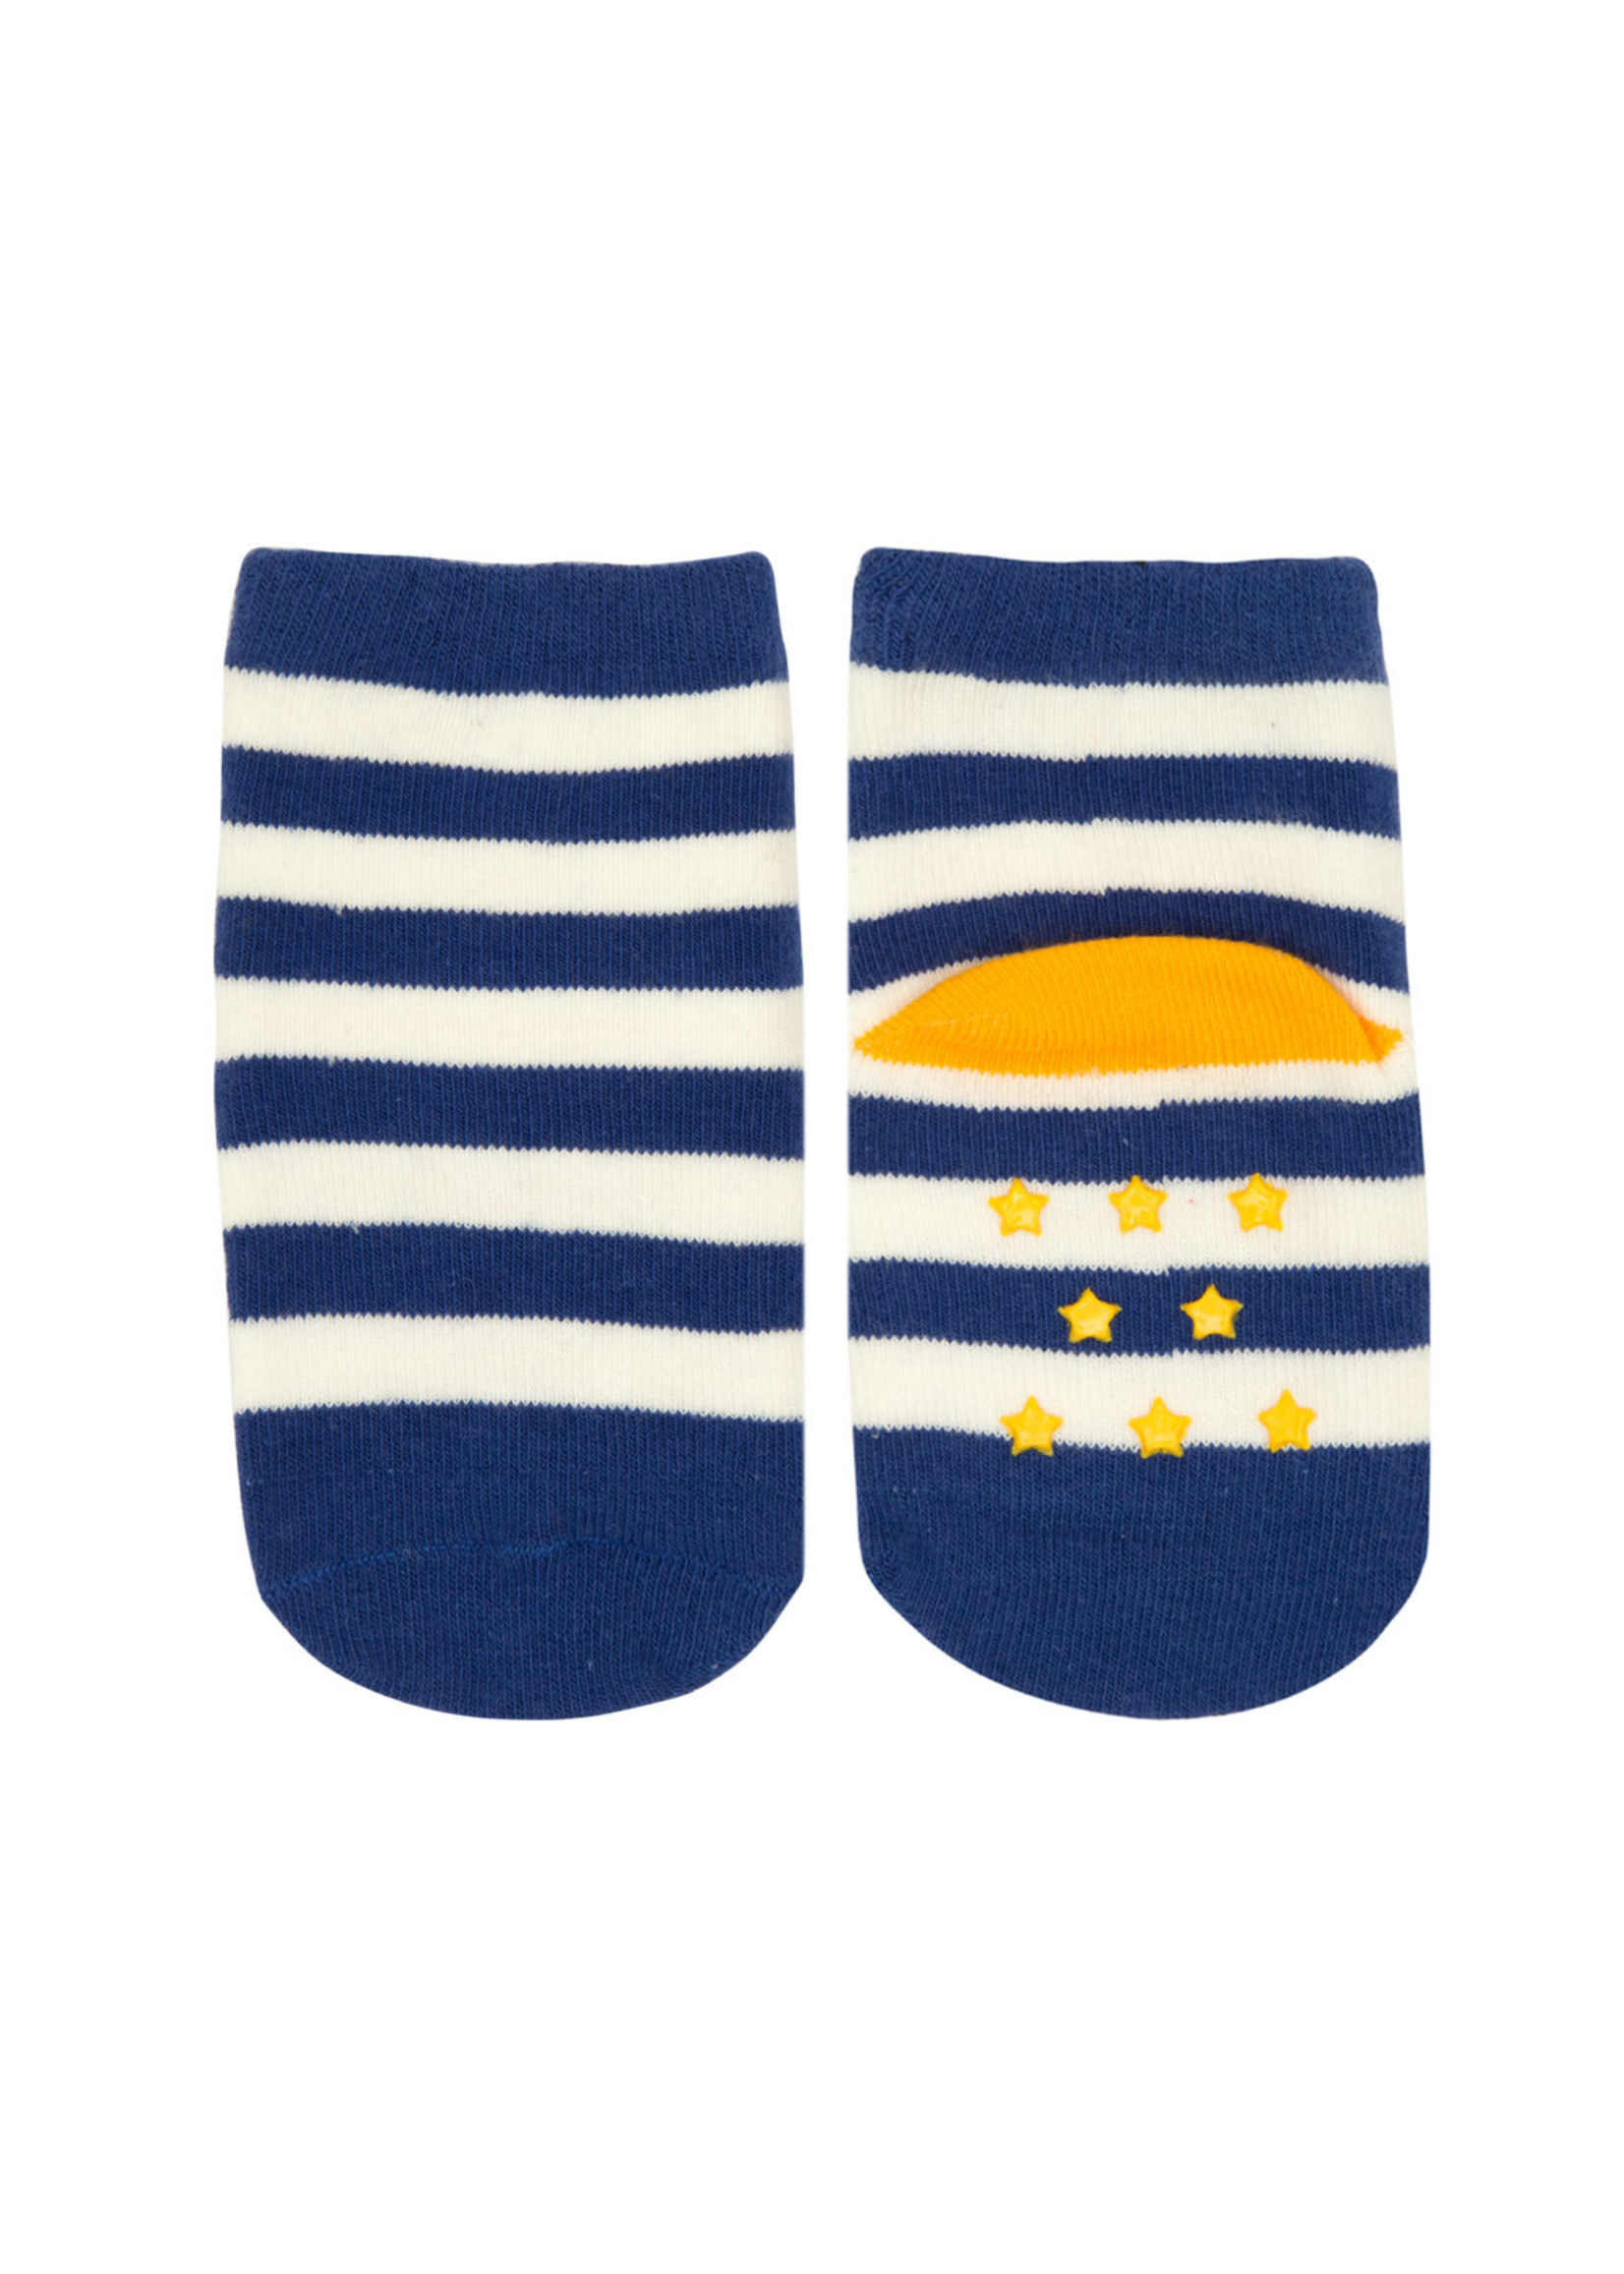 Out of Print Le Petit Prince Socks - Kids, Pack of 4